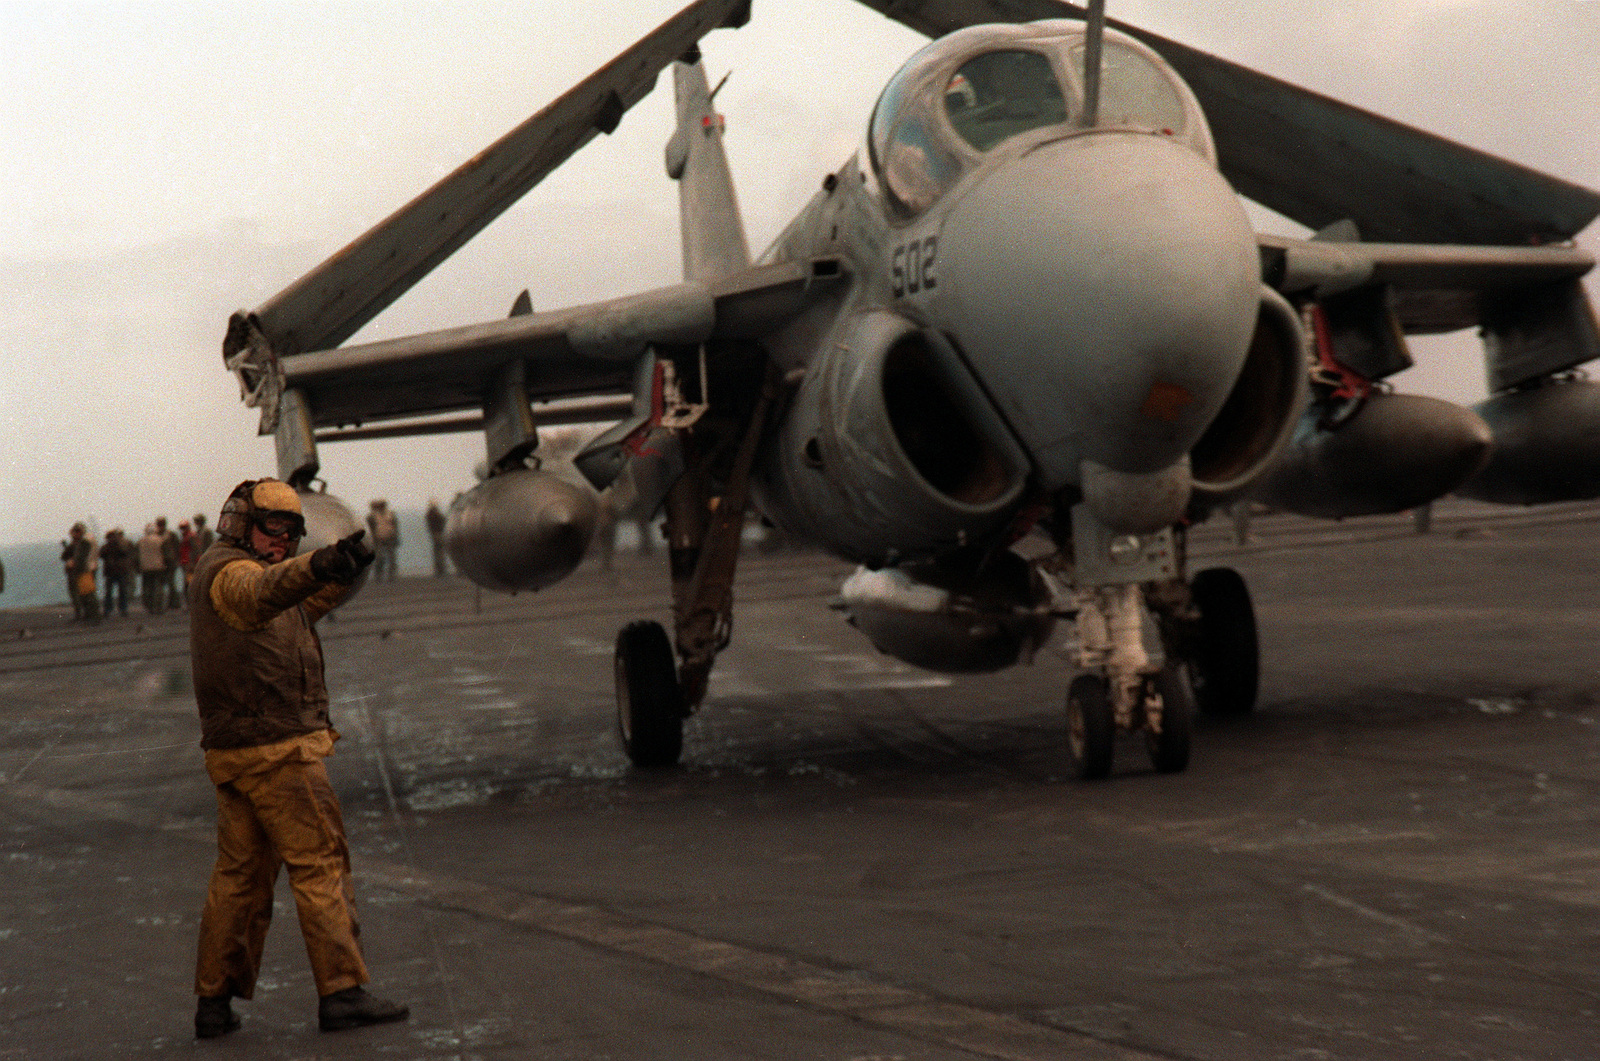 A flight deck crewman guides an A-6E Intruder aircraft from its parking space on the flight deck of the aircraft carrier USS FORRESTAL (CV-59) during exercise Team Work '88